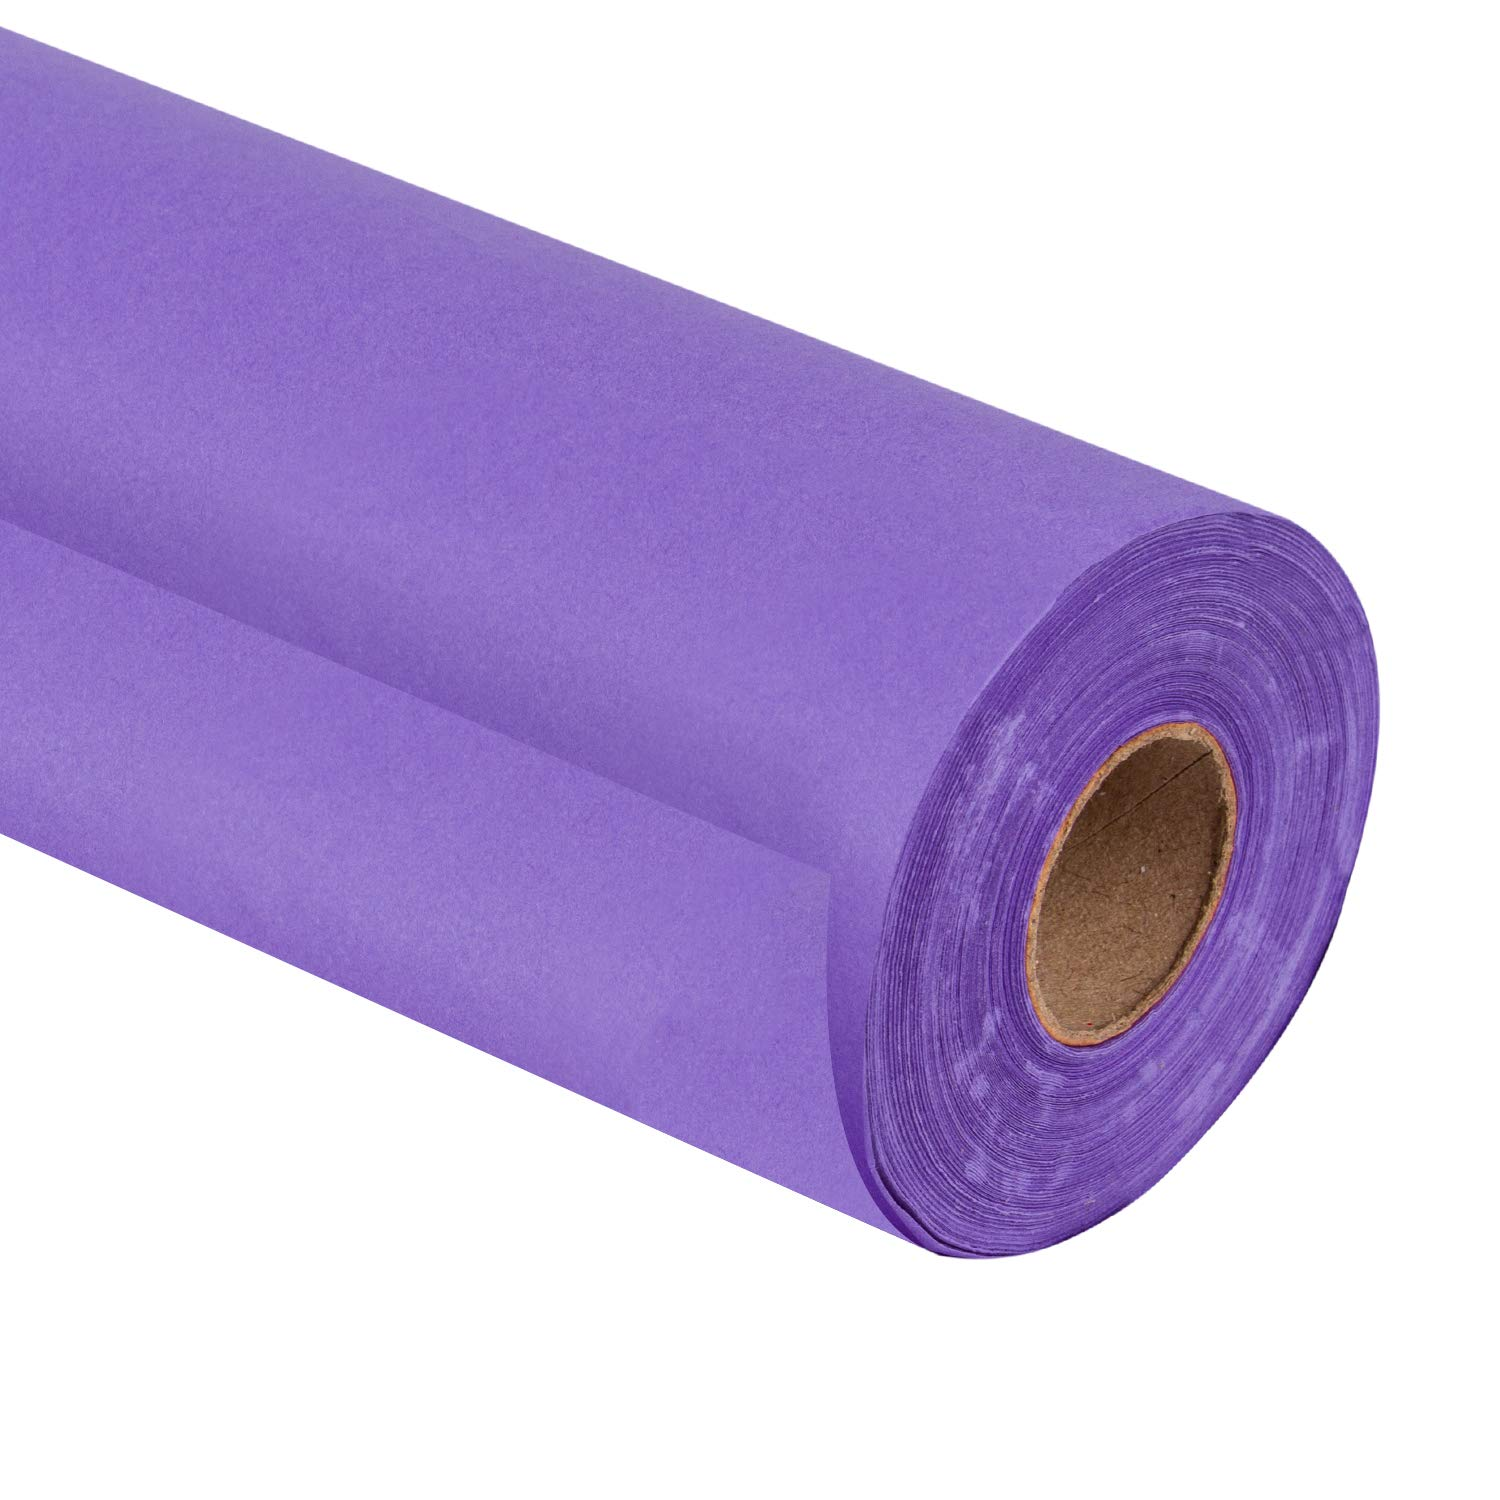 RUSPEPA Purple Kraft Paper Roll - 30 inch x 100 Feet - Recycled Paper Perfect for Crafts, Art, Gift Wrapping, Packing, Postal, Shipping, Dunnage, Parcel